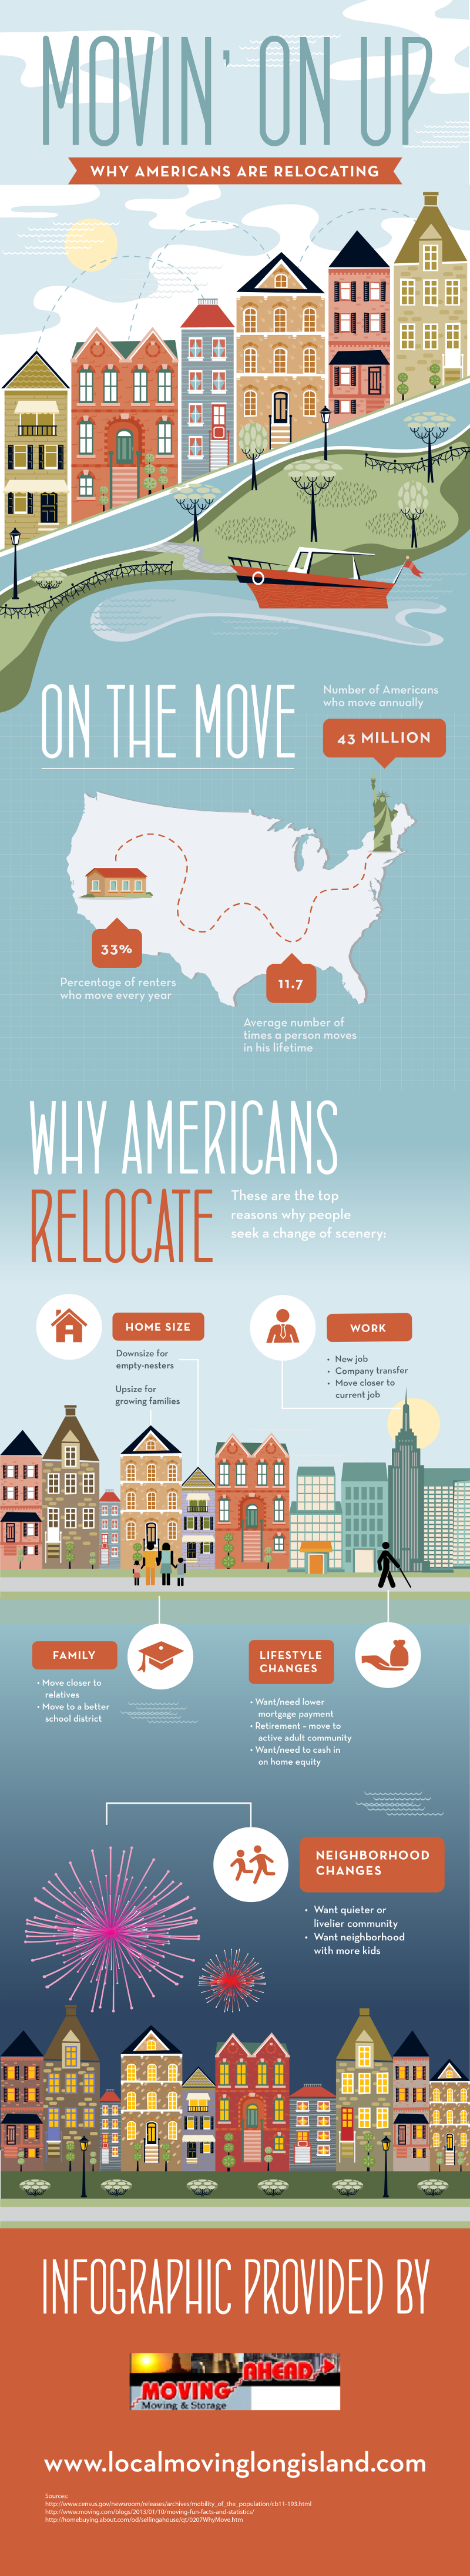 Relocating Statistics in America